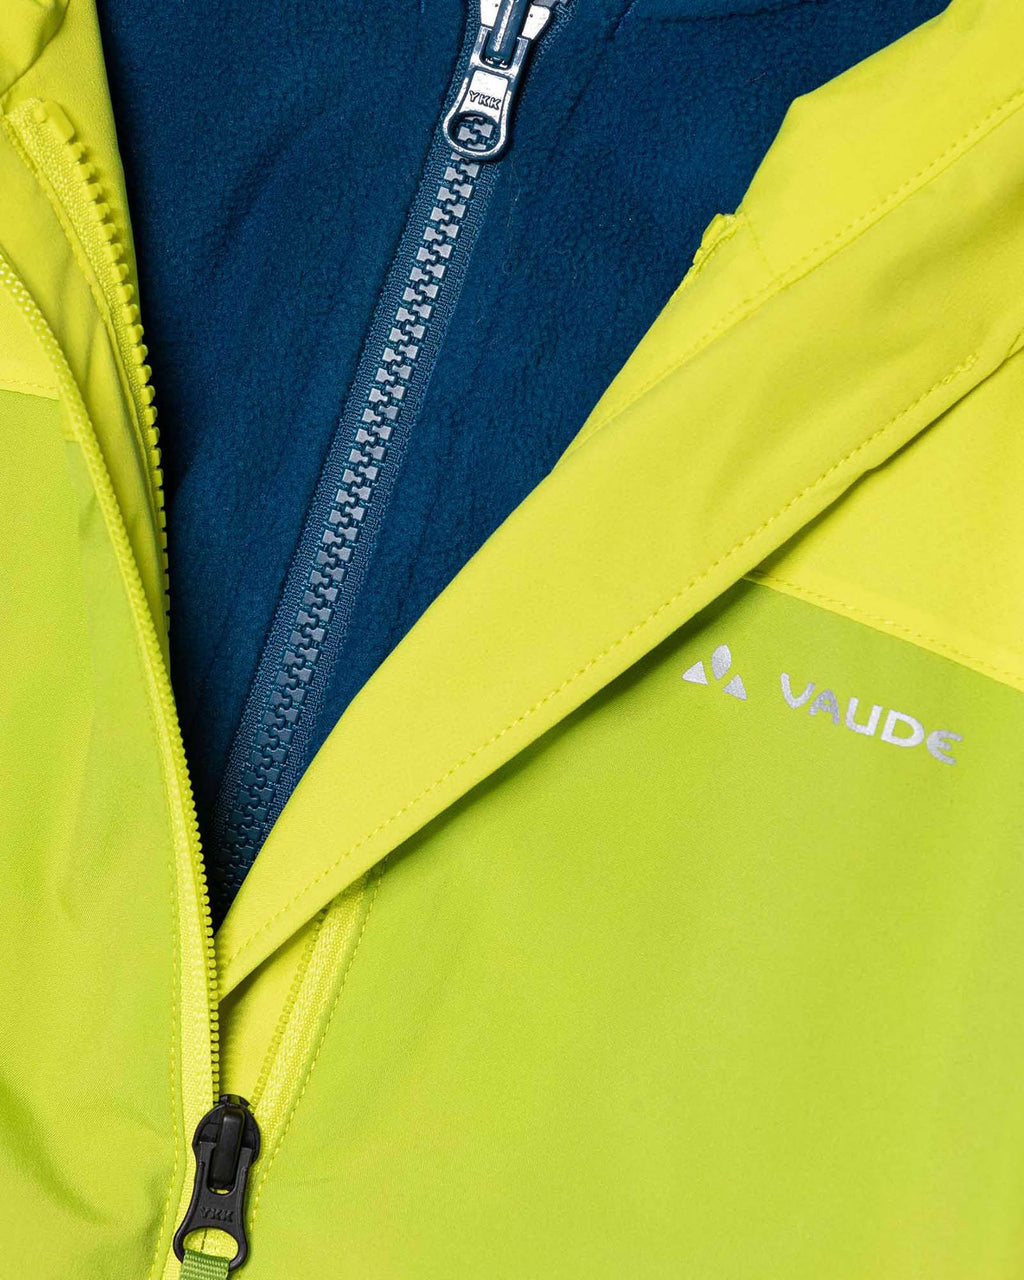 variant_1 | EN green yellow kids jacket outdoor windproof waterproof Urban Citylife warm winter jacket 3in1 fleece | DE gelb grün Kinder Jacke Outdoor Windabweisend Wasserabweisend Wärmend Fleecefutter 3 in 1